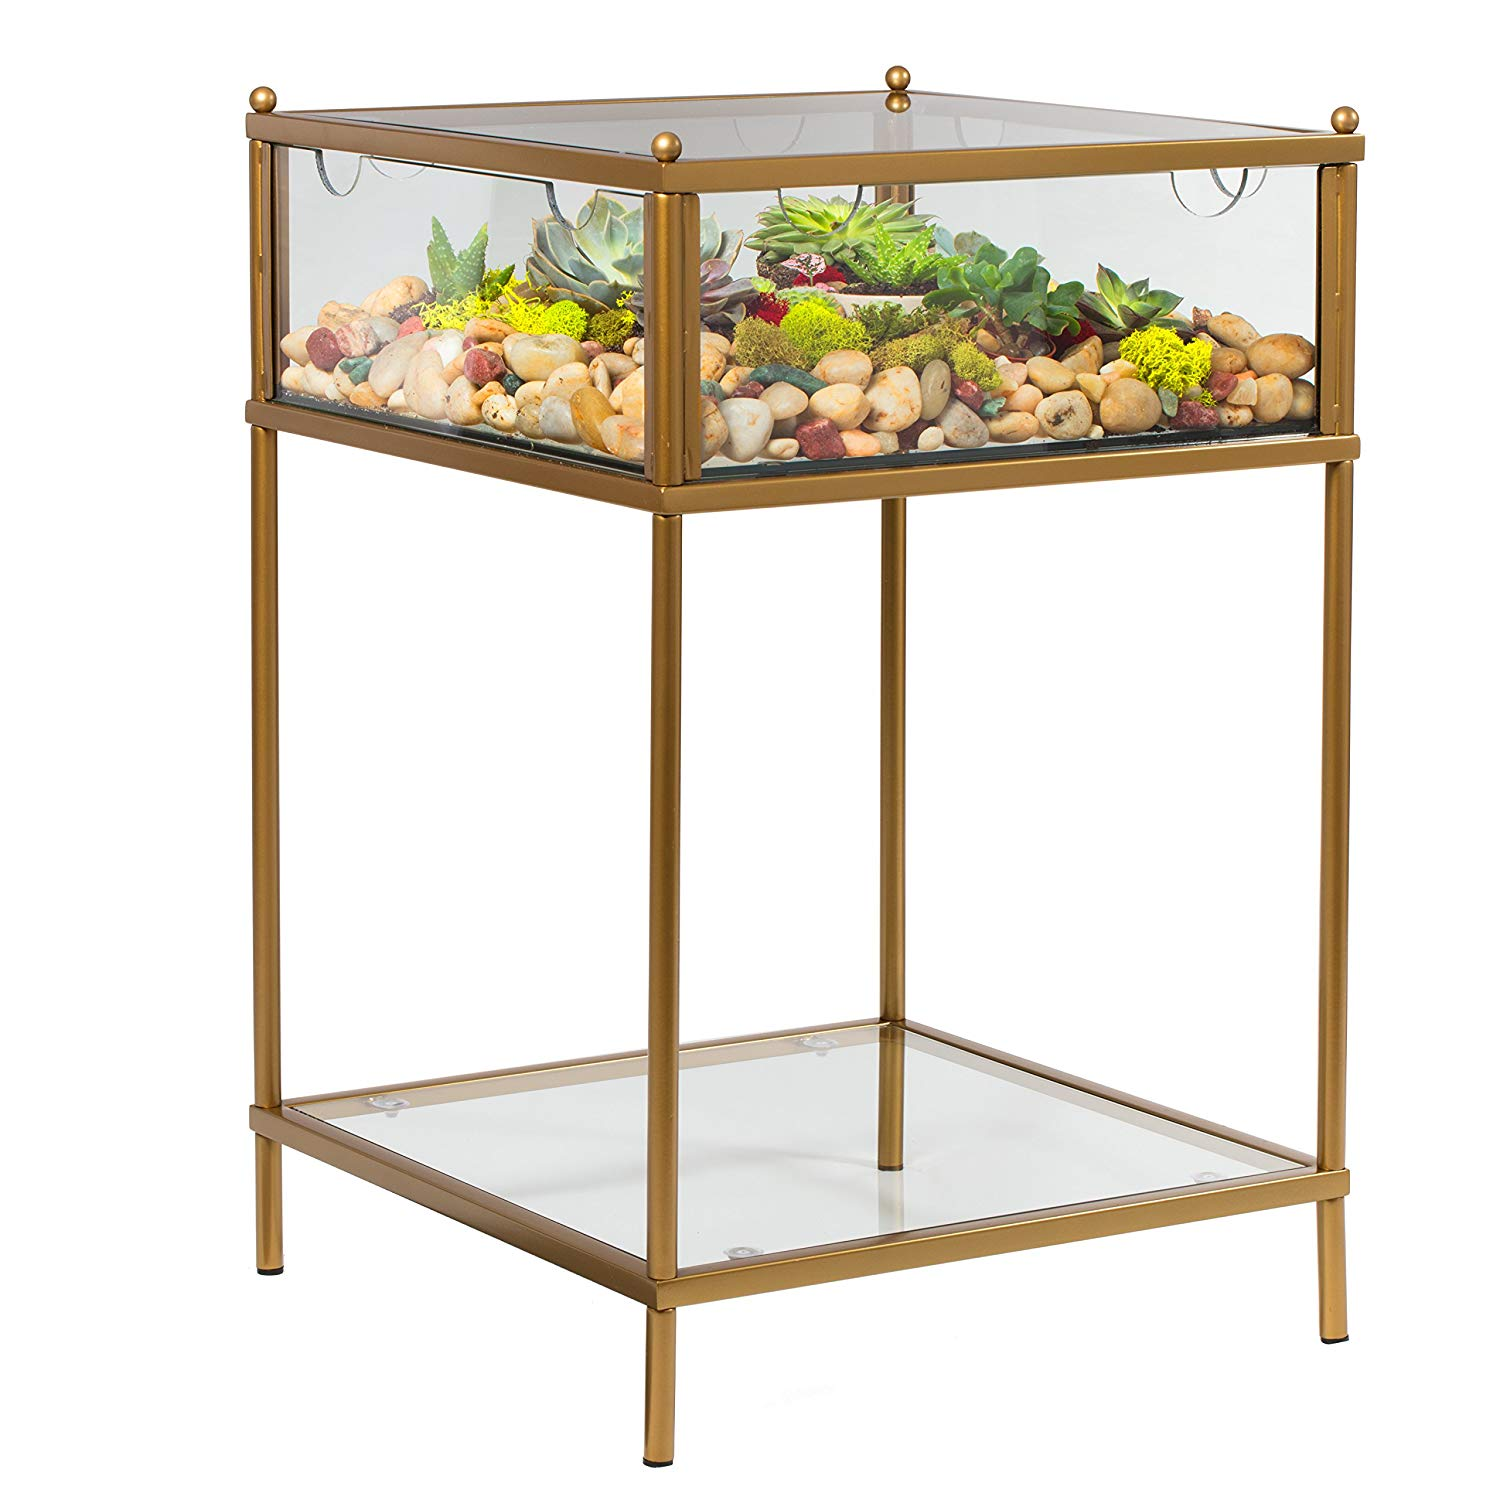 terrarium display end table with reinforced glass case gold iron kitchen dining universal furniture elephant lazboy edmonton natural color coffee lift top winnipeg nightstand